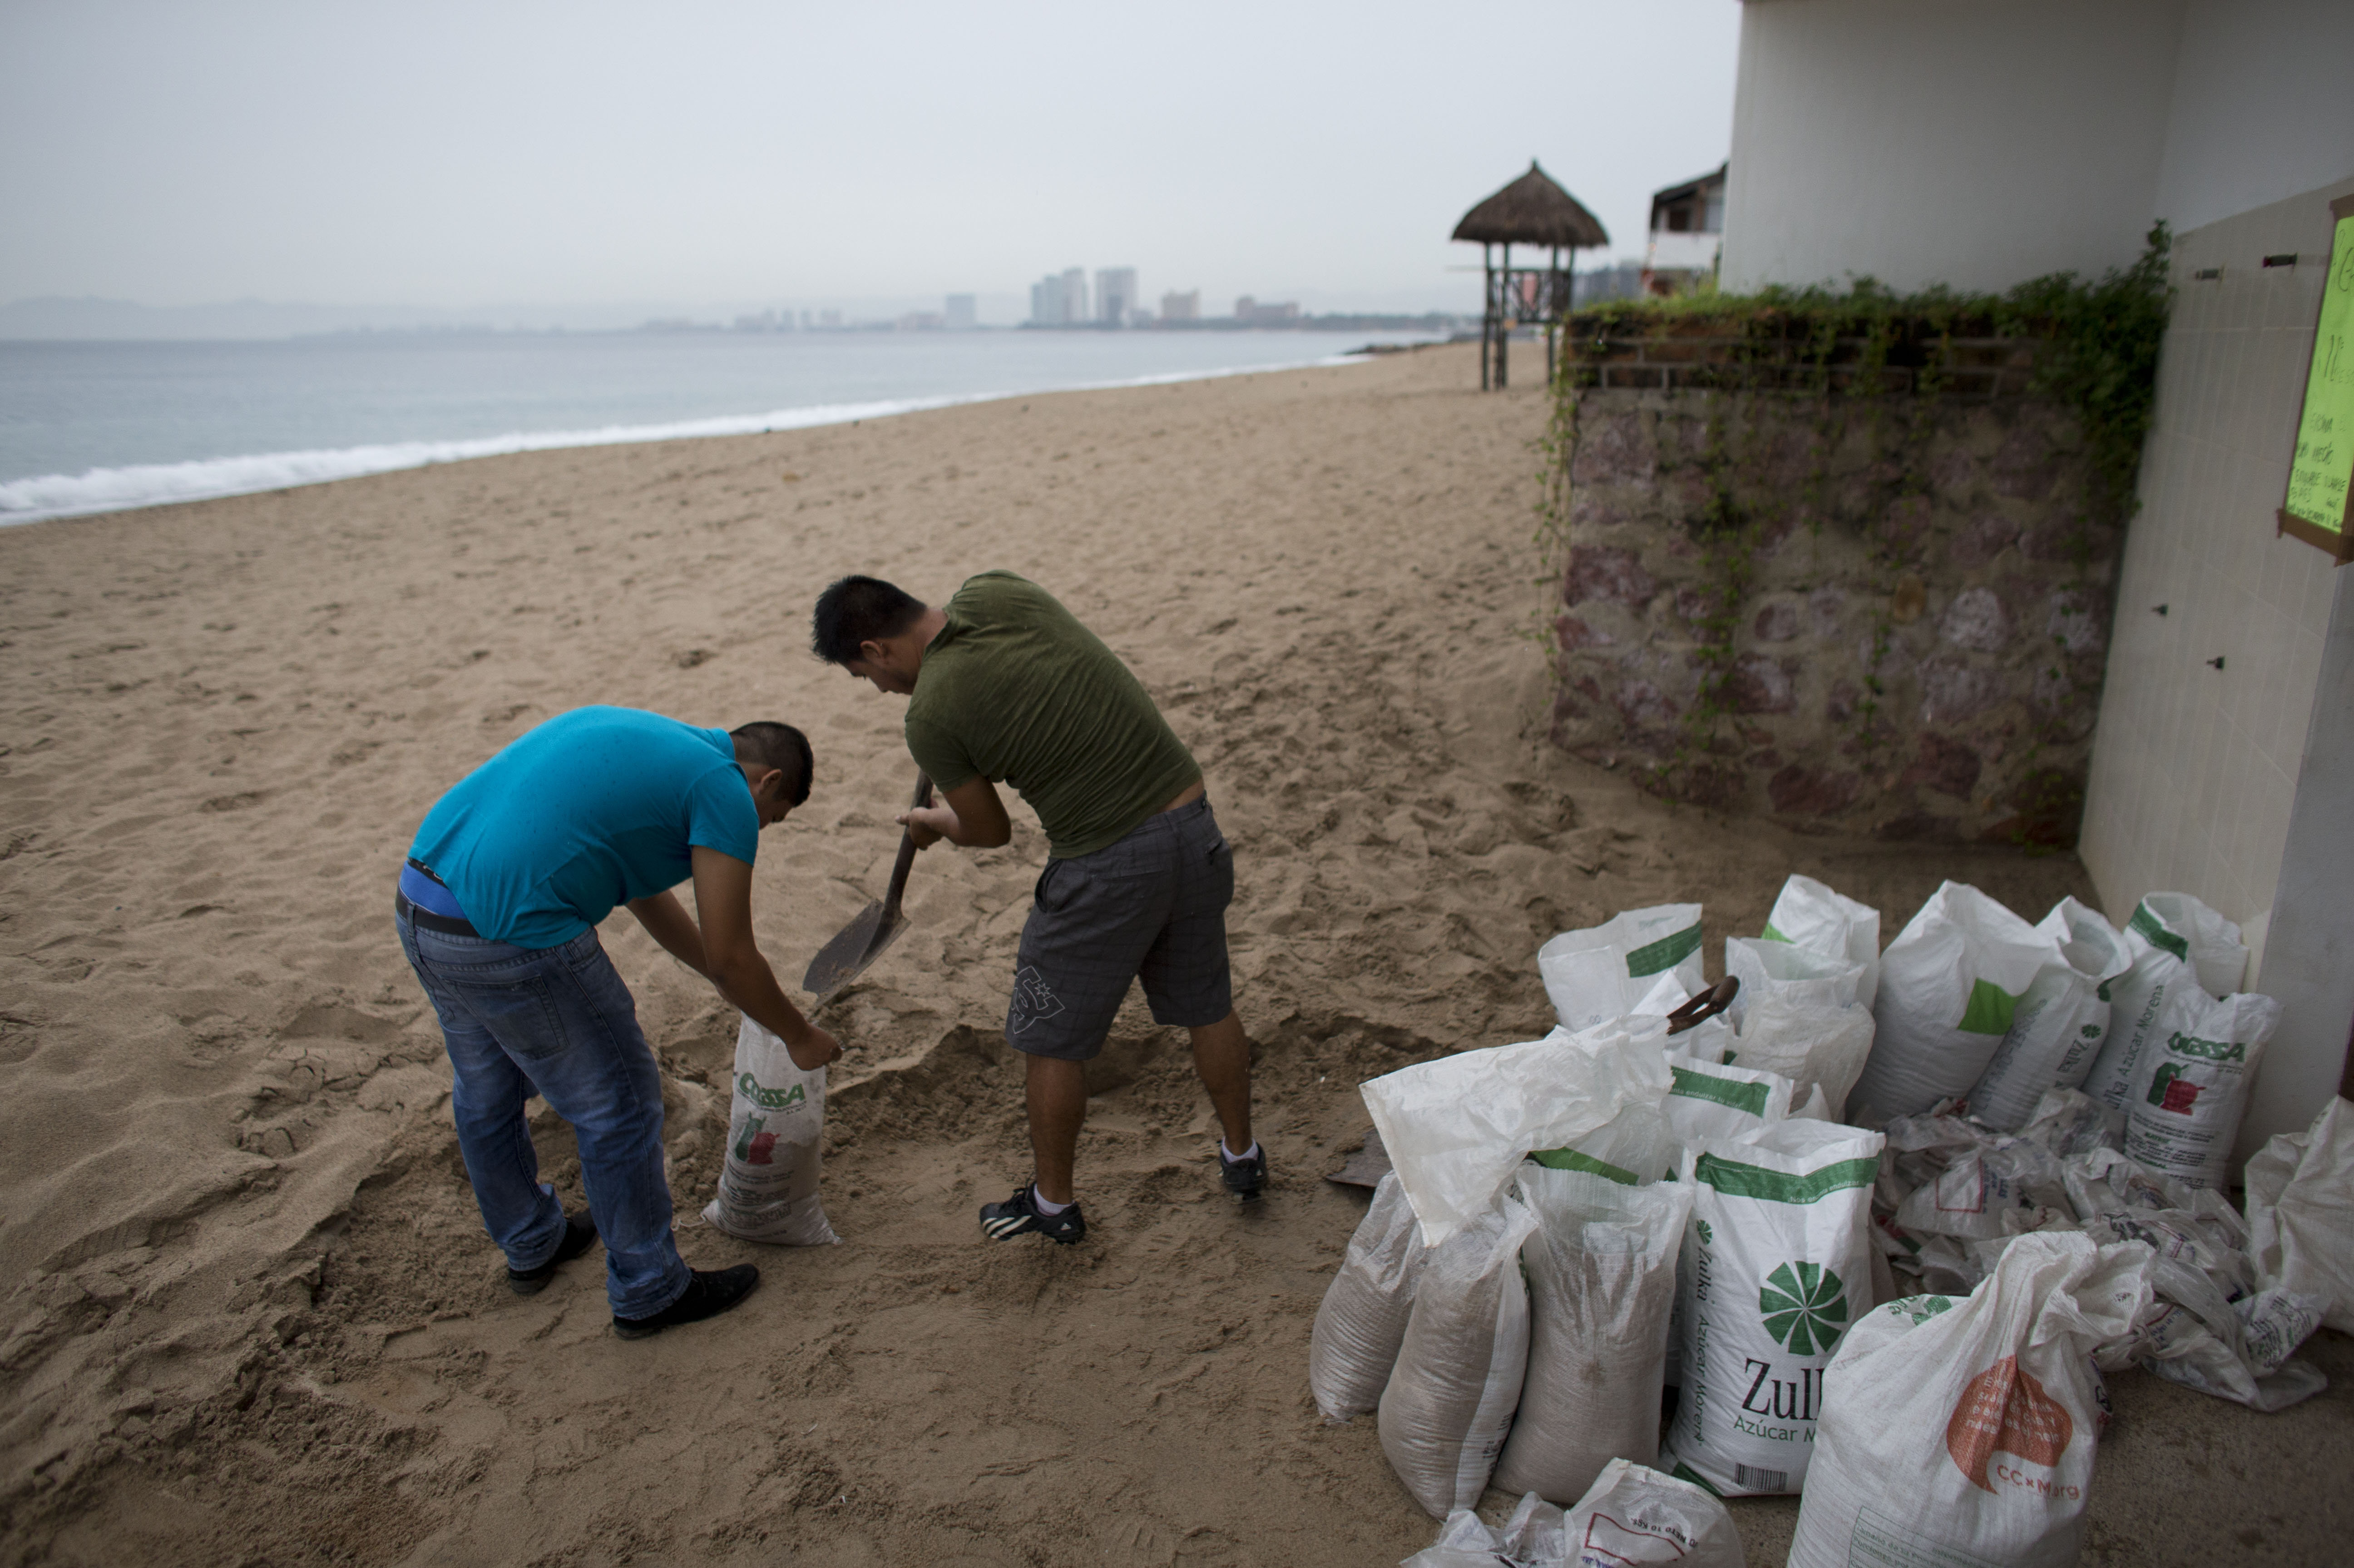 Men fill small bags with sand from the beach as they prepare for the arrival of Hurricane Patricia in Puerto Vallarta.